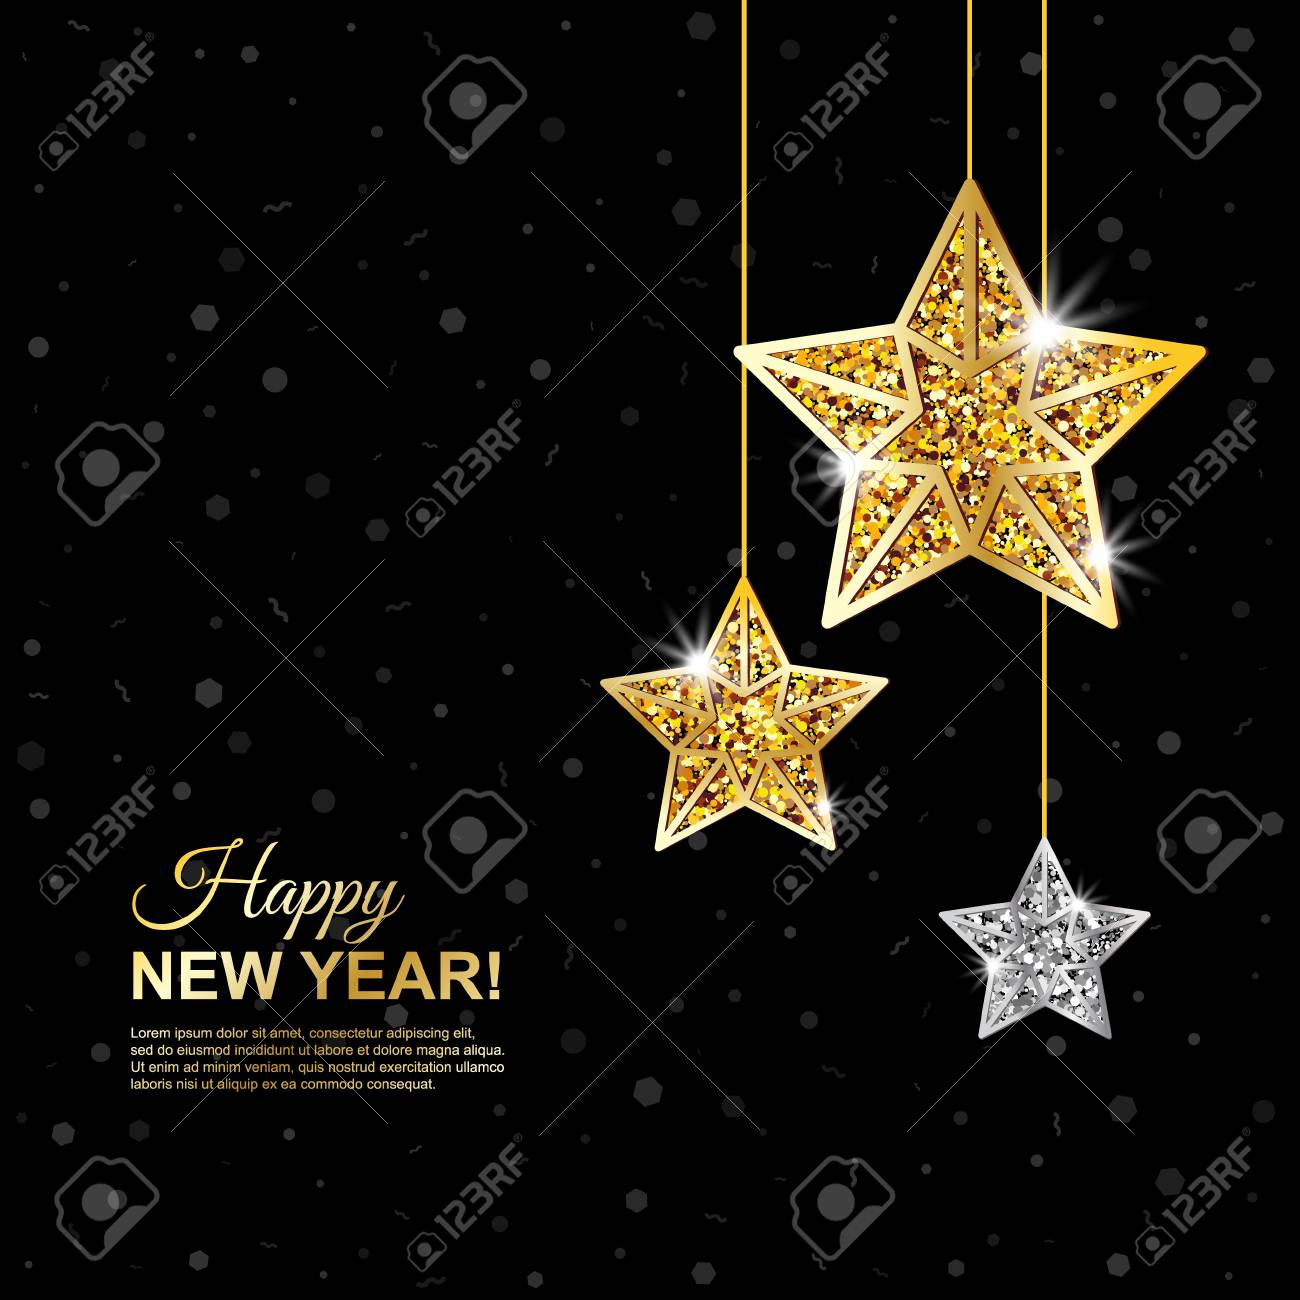 Merry Christmas And Happy New Year Glowing Banner Glitter Black Background With Hanging Gold